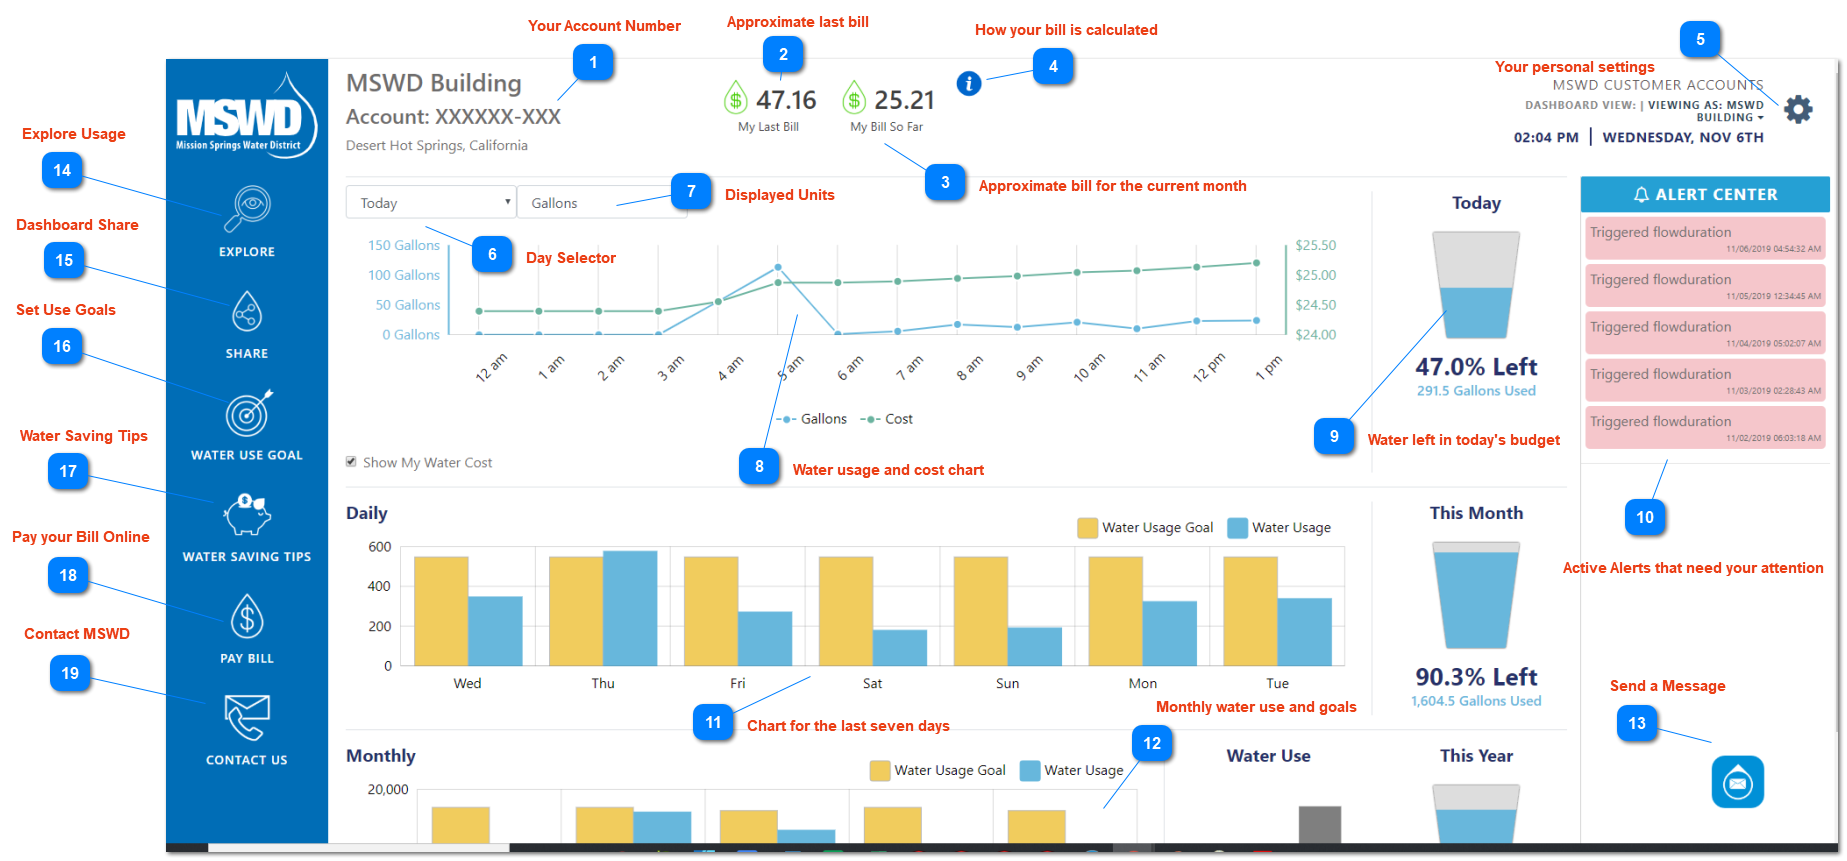 1. MSWD Dashboard Overview